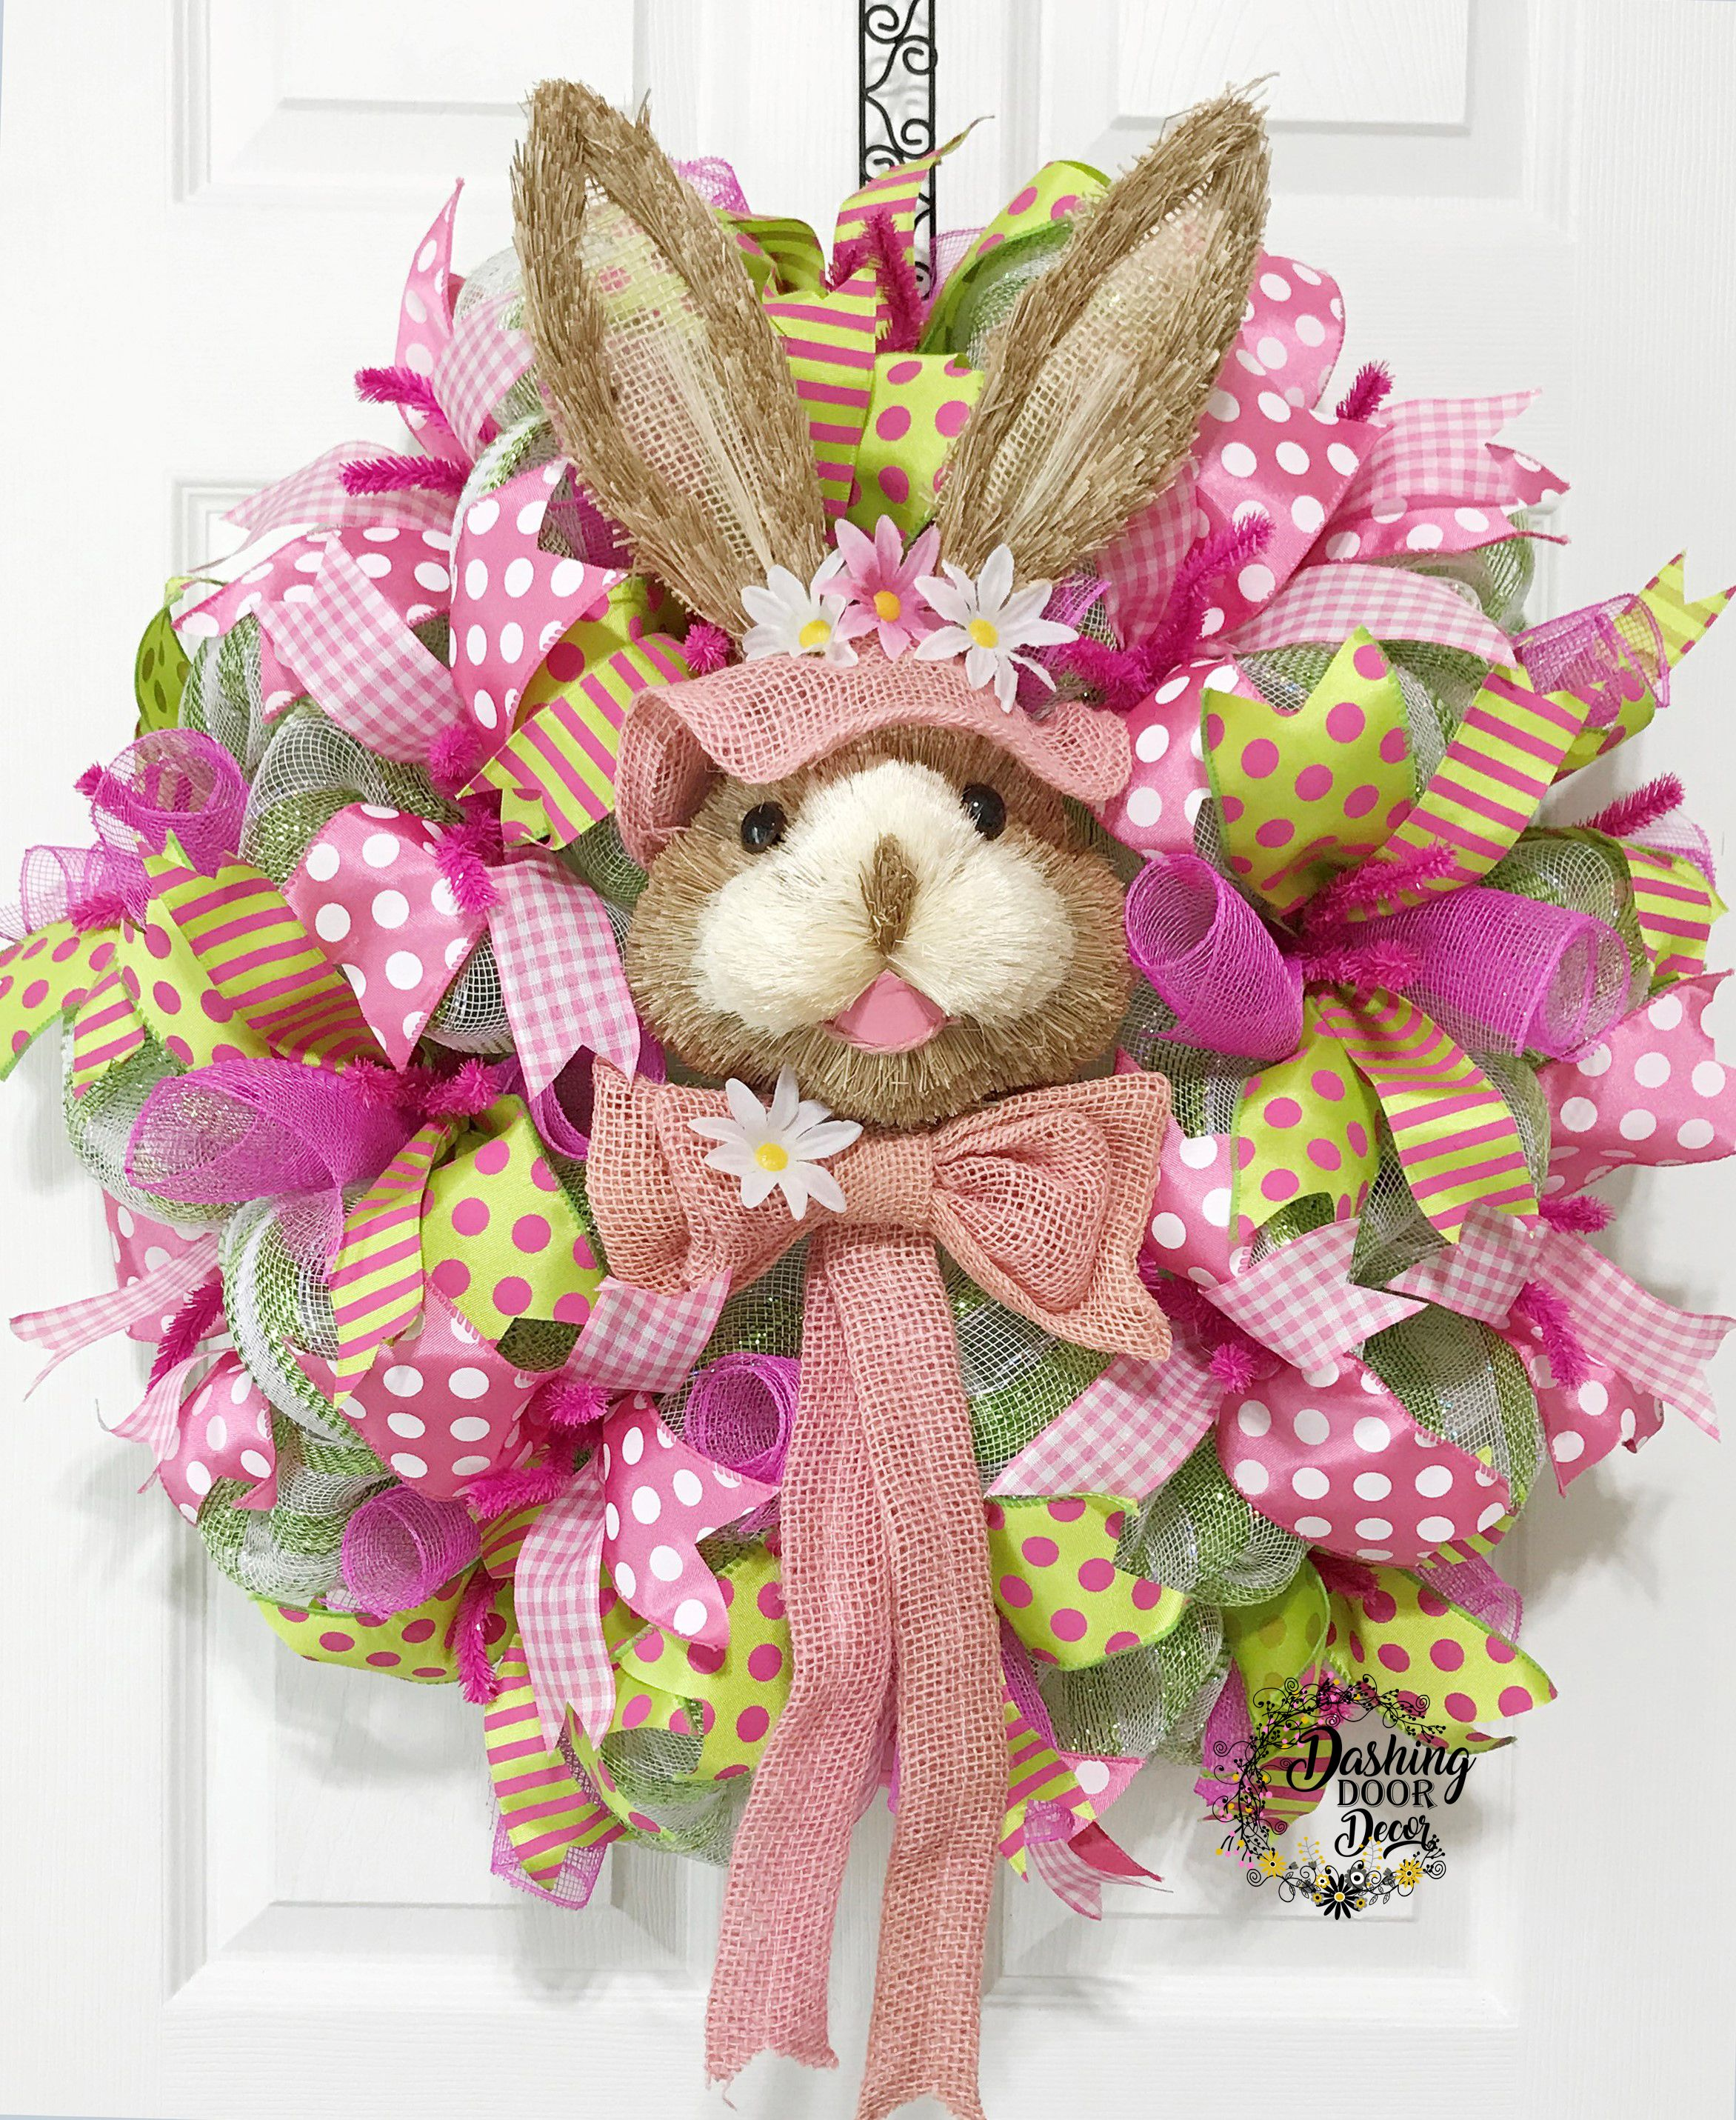 14+ How to make a burlap bunny wreath inspirations